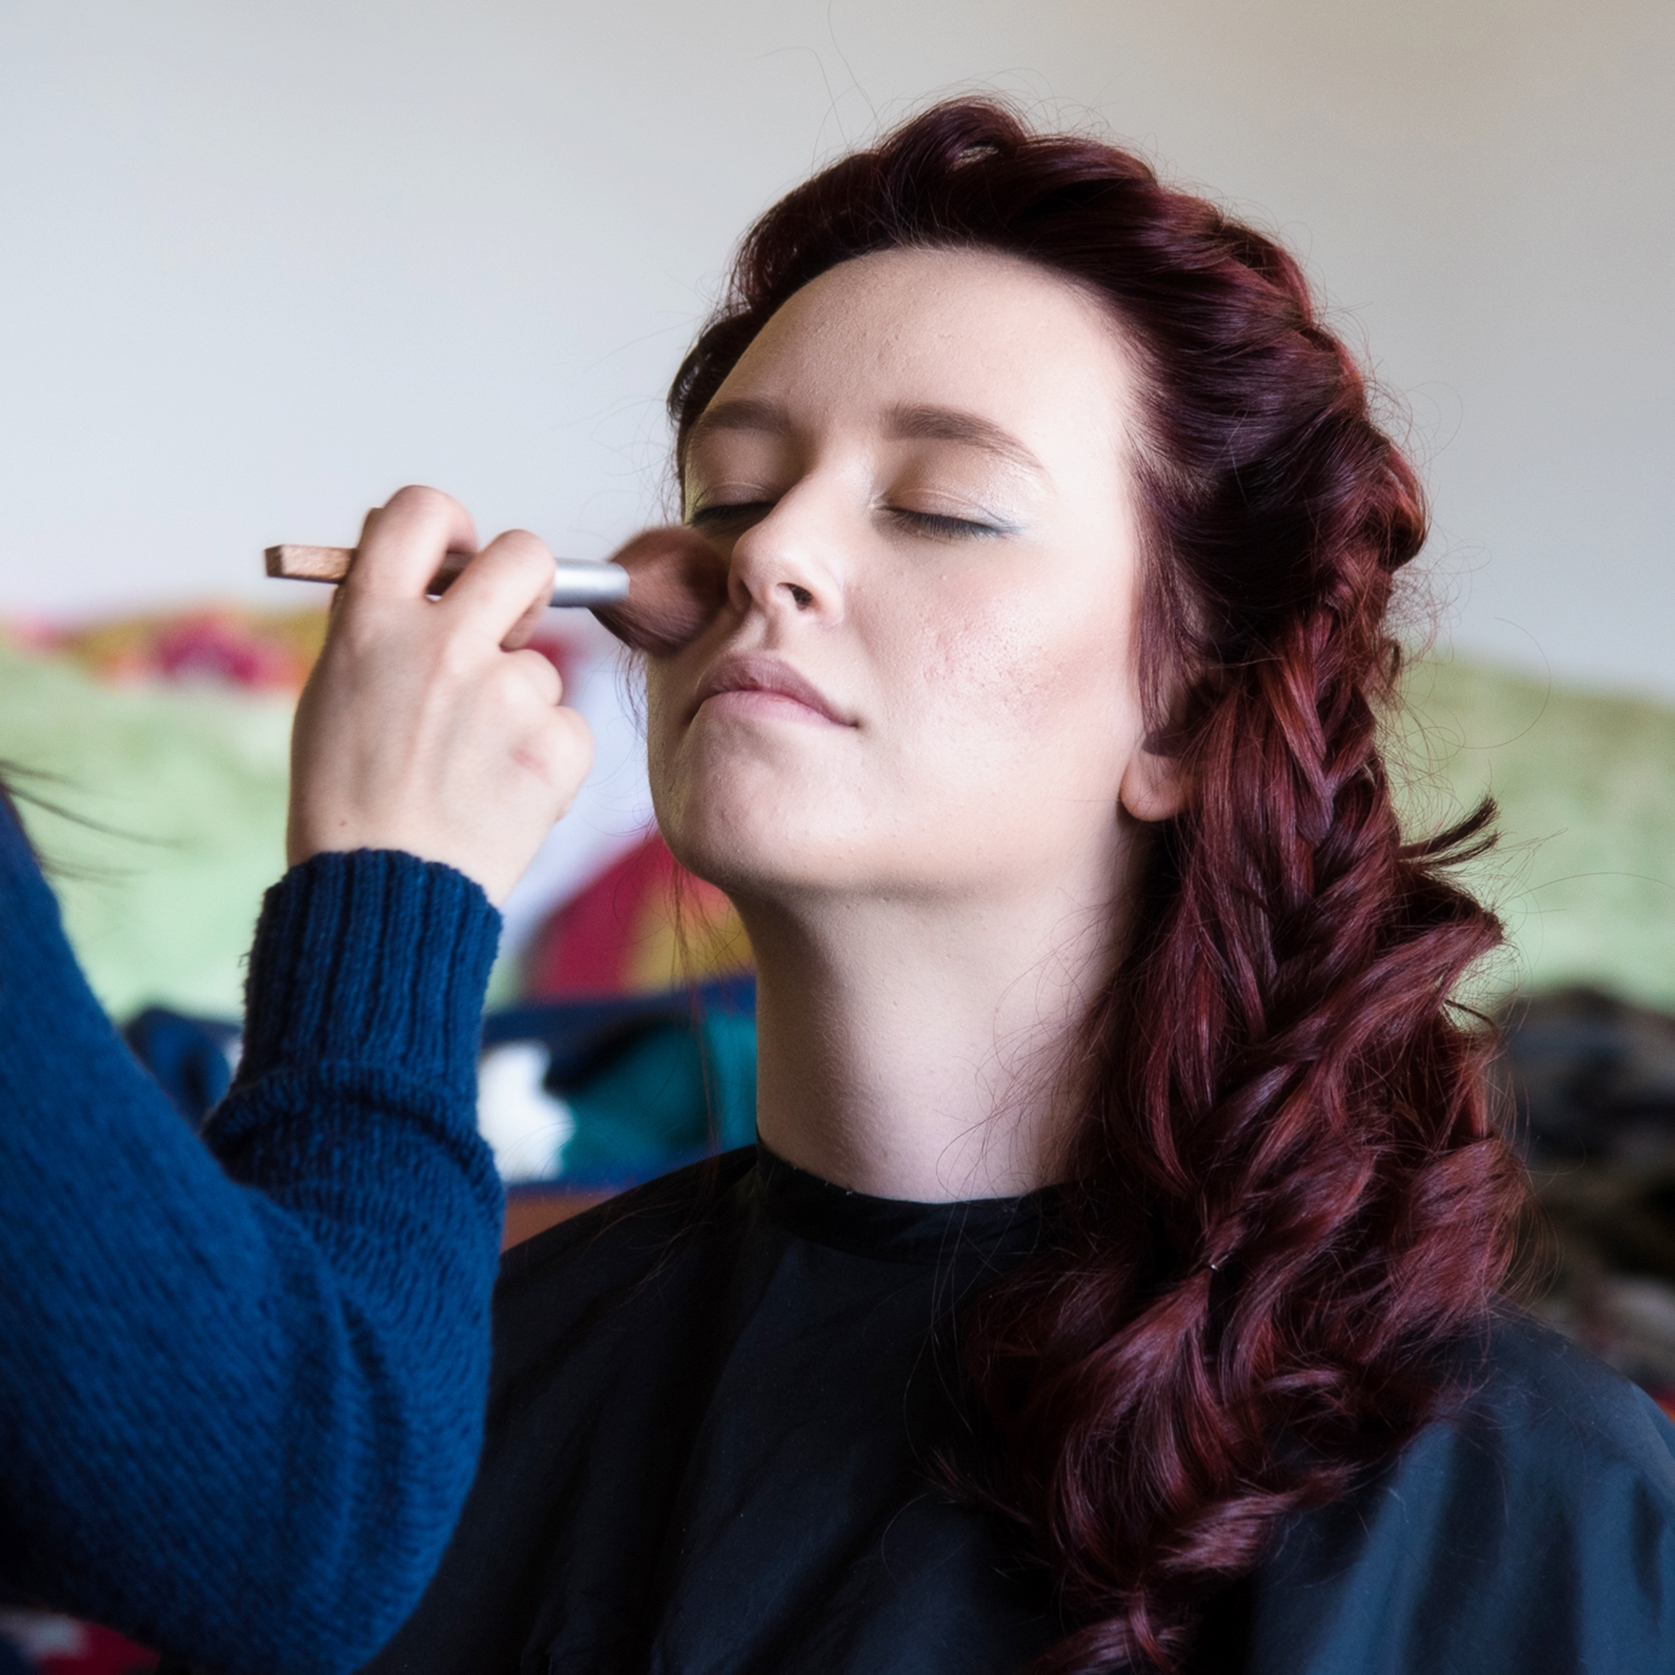 Holly getting makeup done-square.jpg